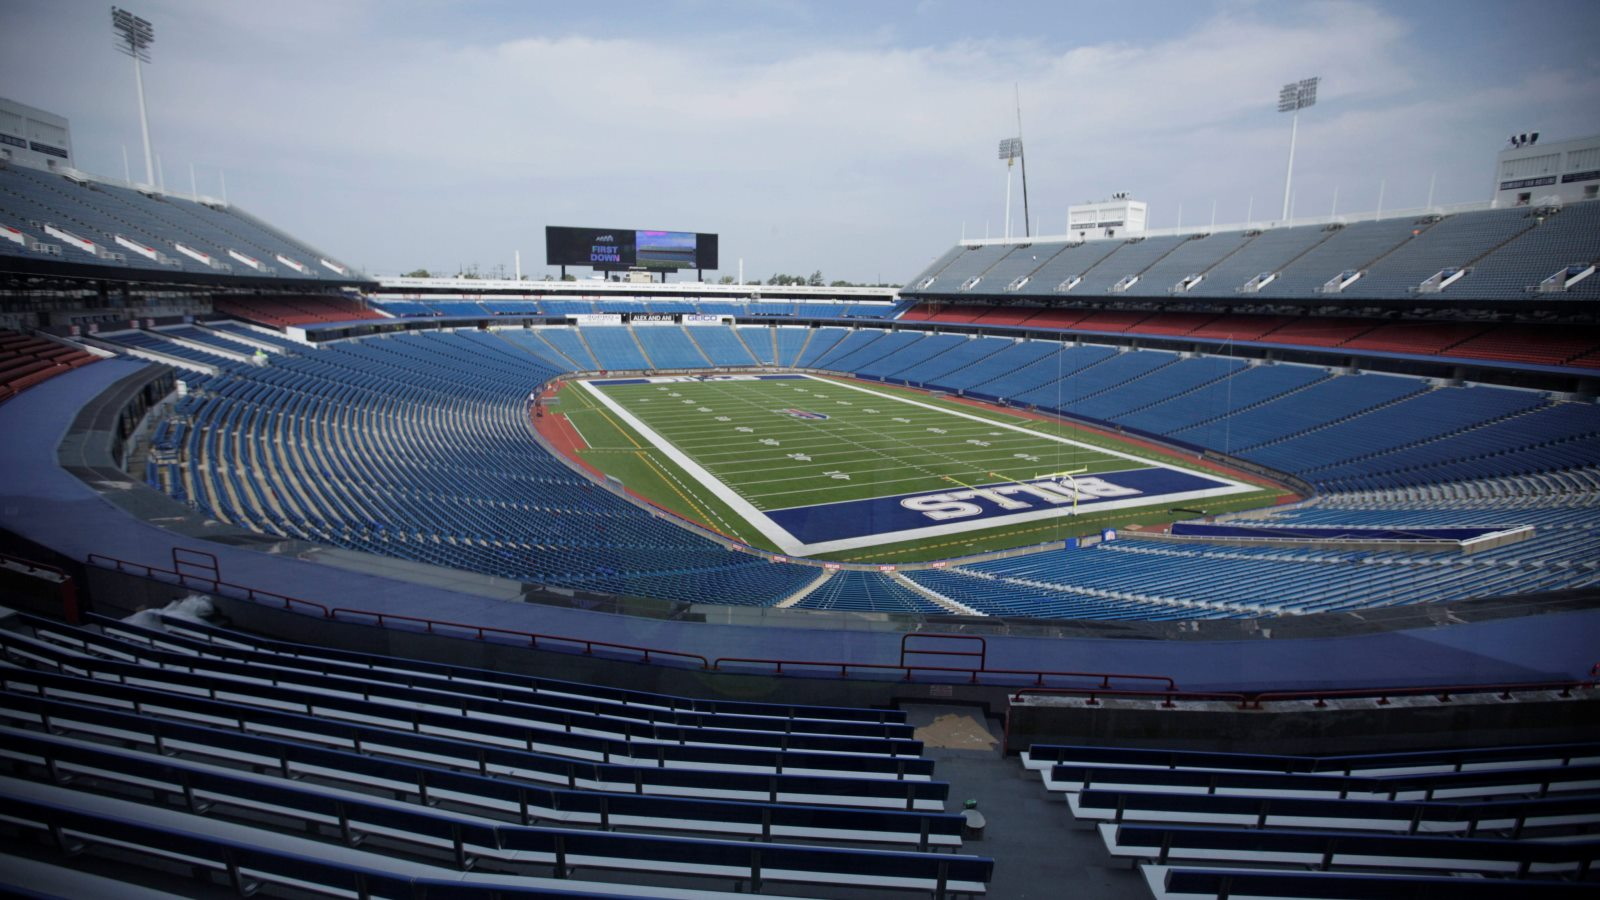 County Executive Mark Poloncarz and Russ Brandon regularly spoke about issues related to the Bills and stadium needs. (Derek Gee/Buffalo News)